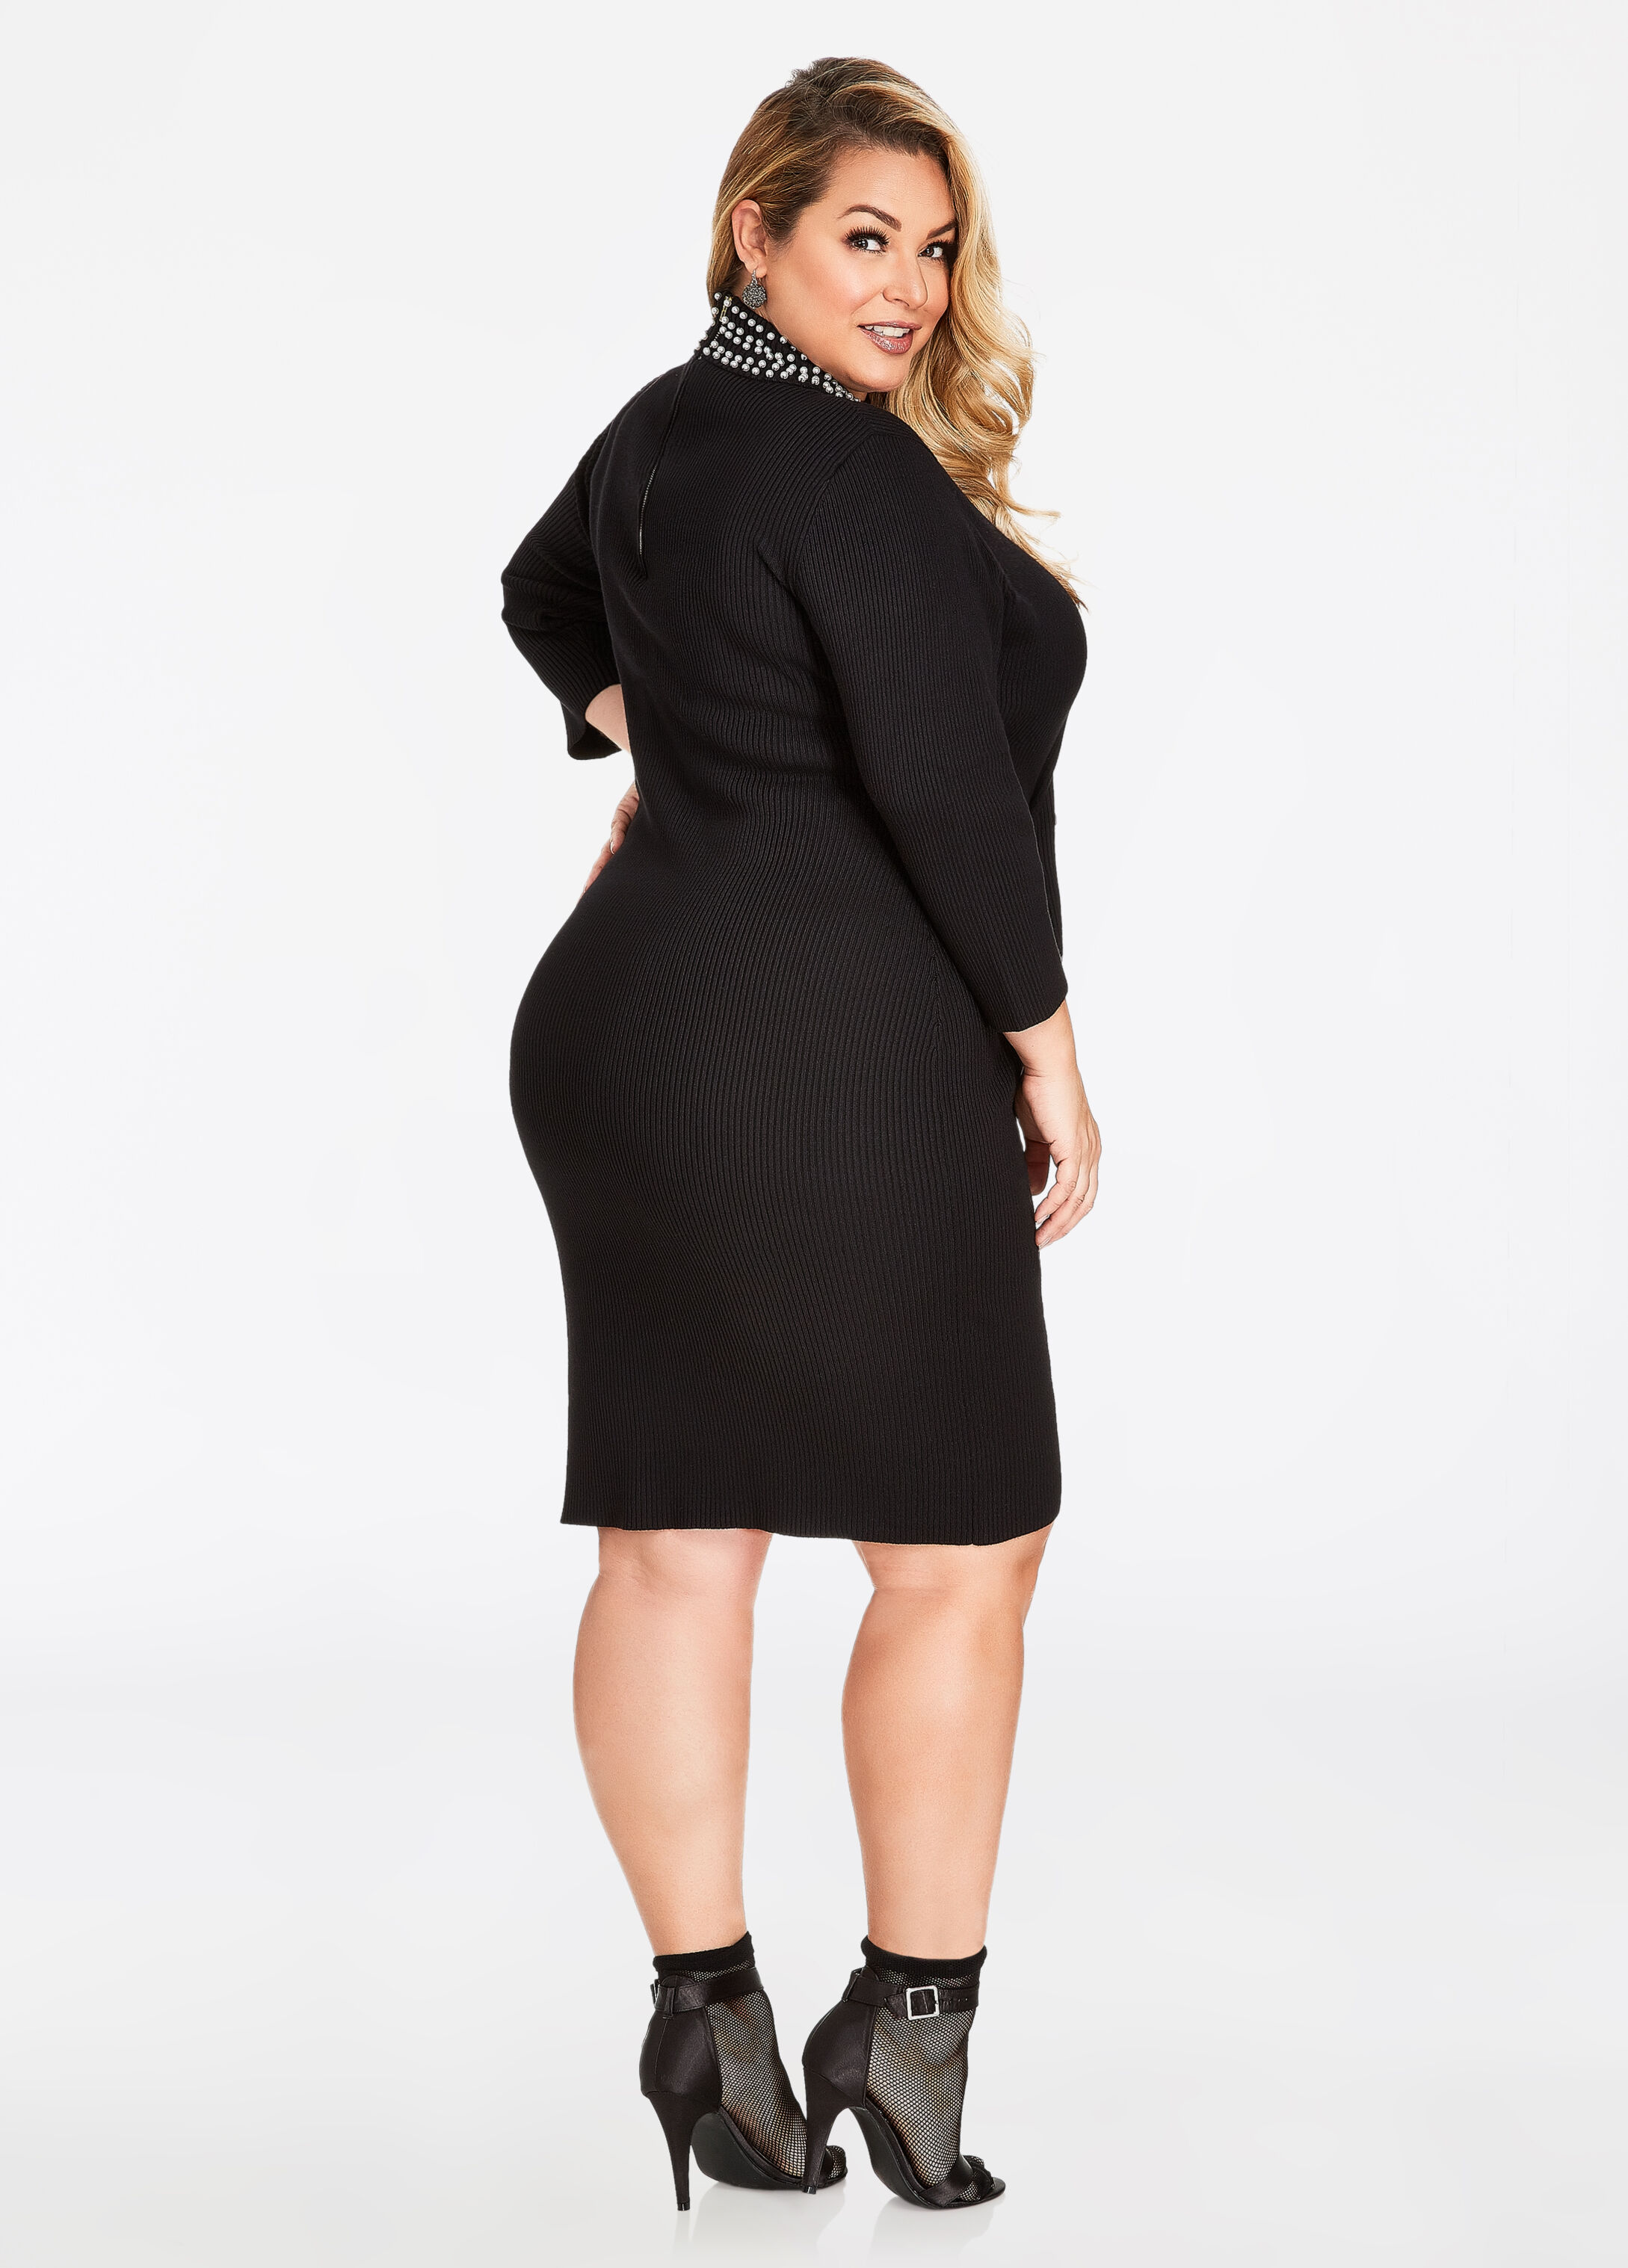 Plus Size Dress - Pearl Mock Neck Ribbed Sweater Dress